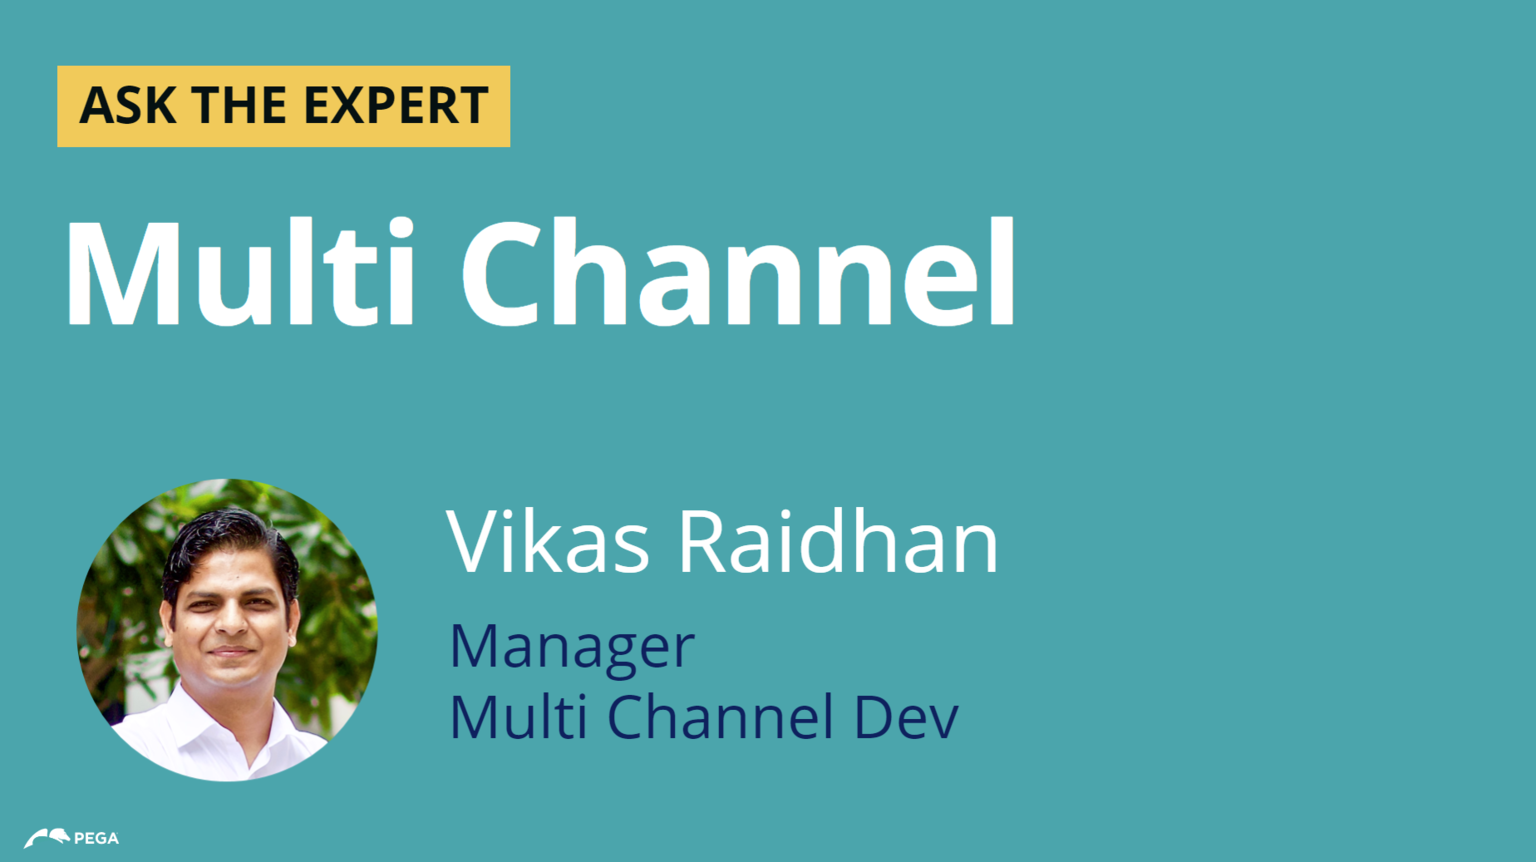 Ask the Expert - Multi Channel Header